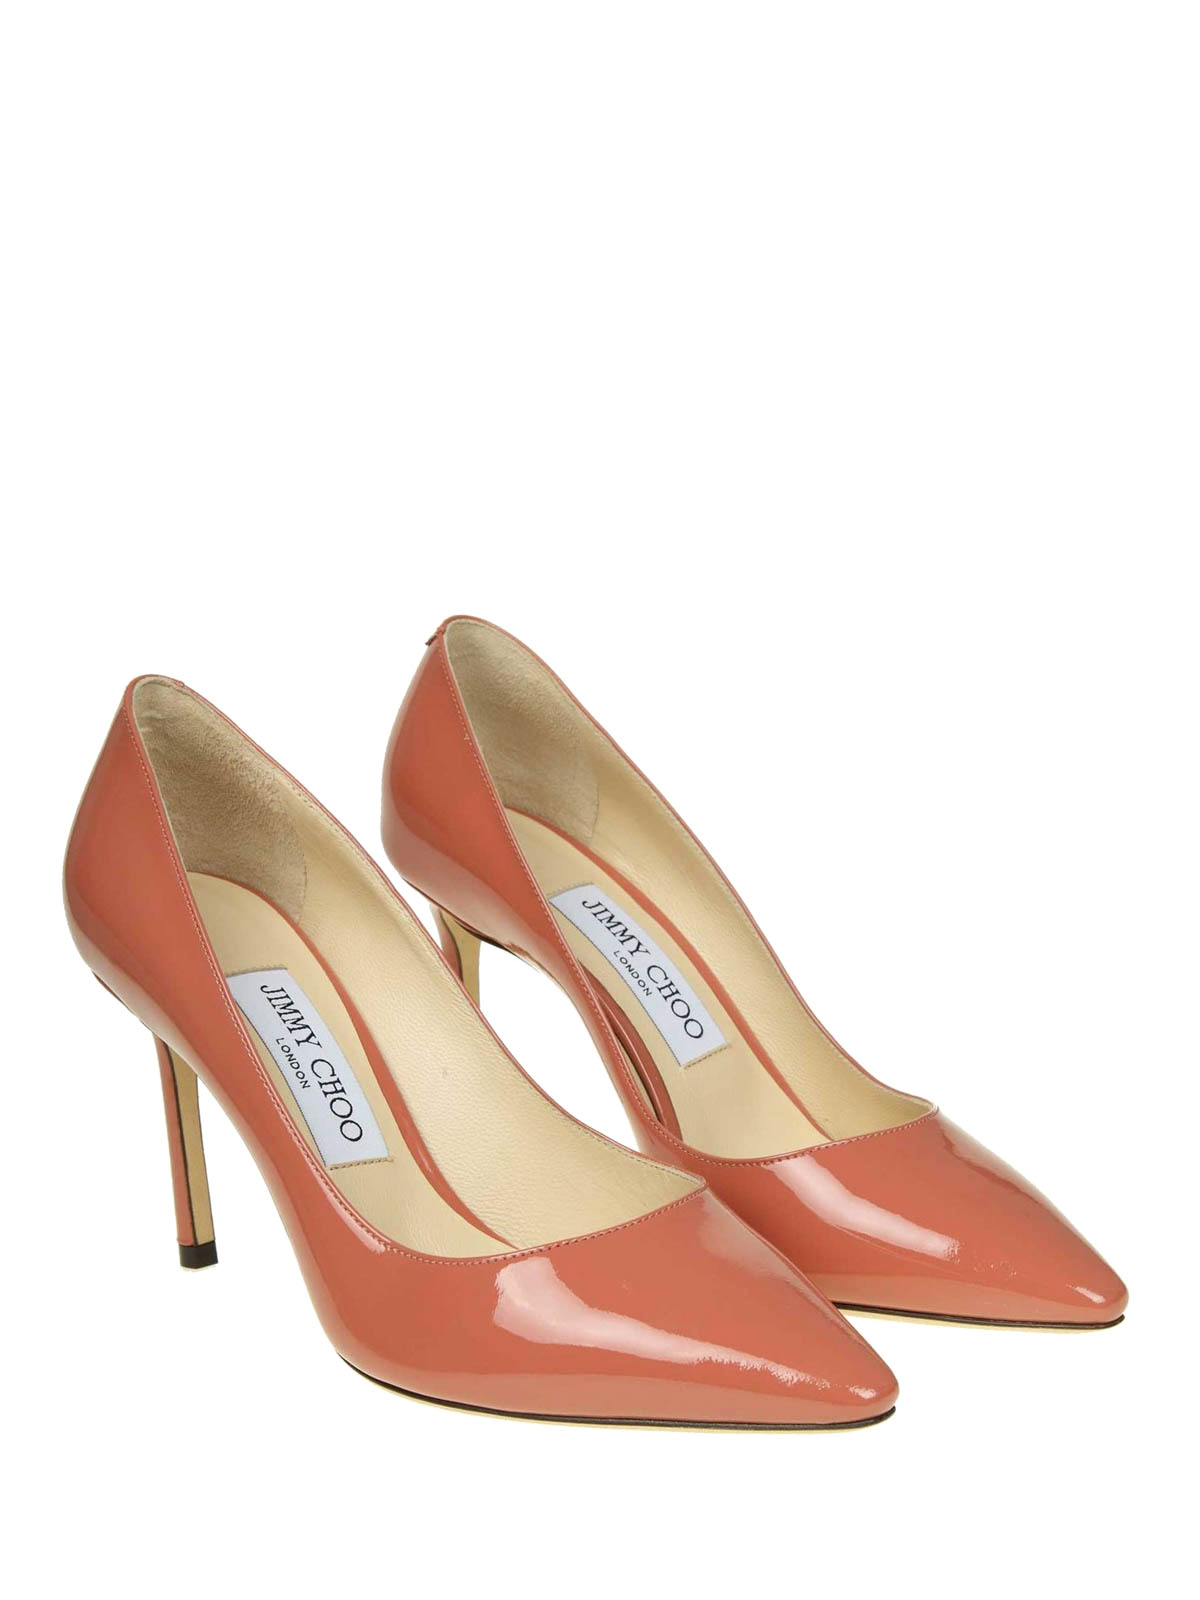 99d4747cd159 JIMMY CHOO  court shoes online - Romy pink patent leather high pumps